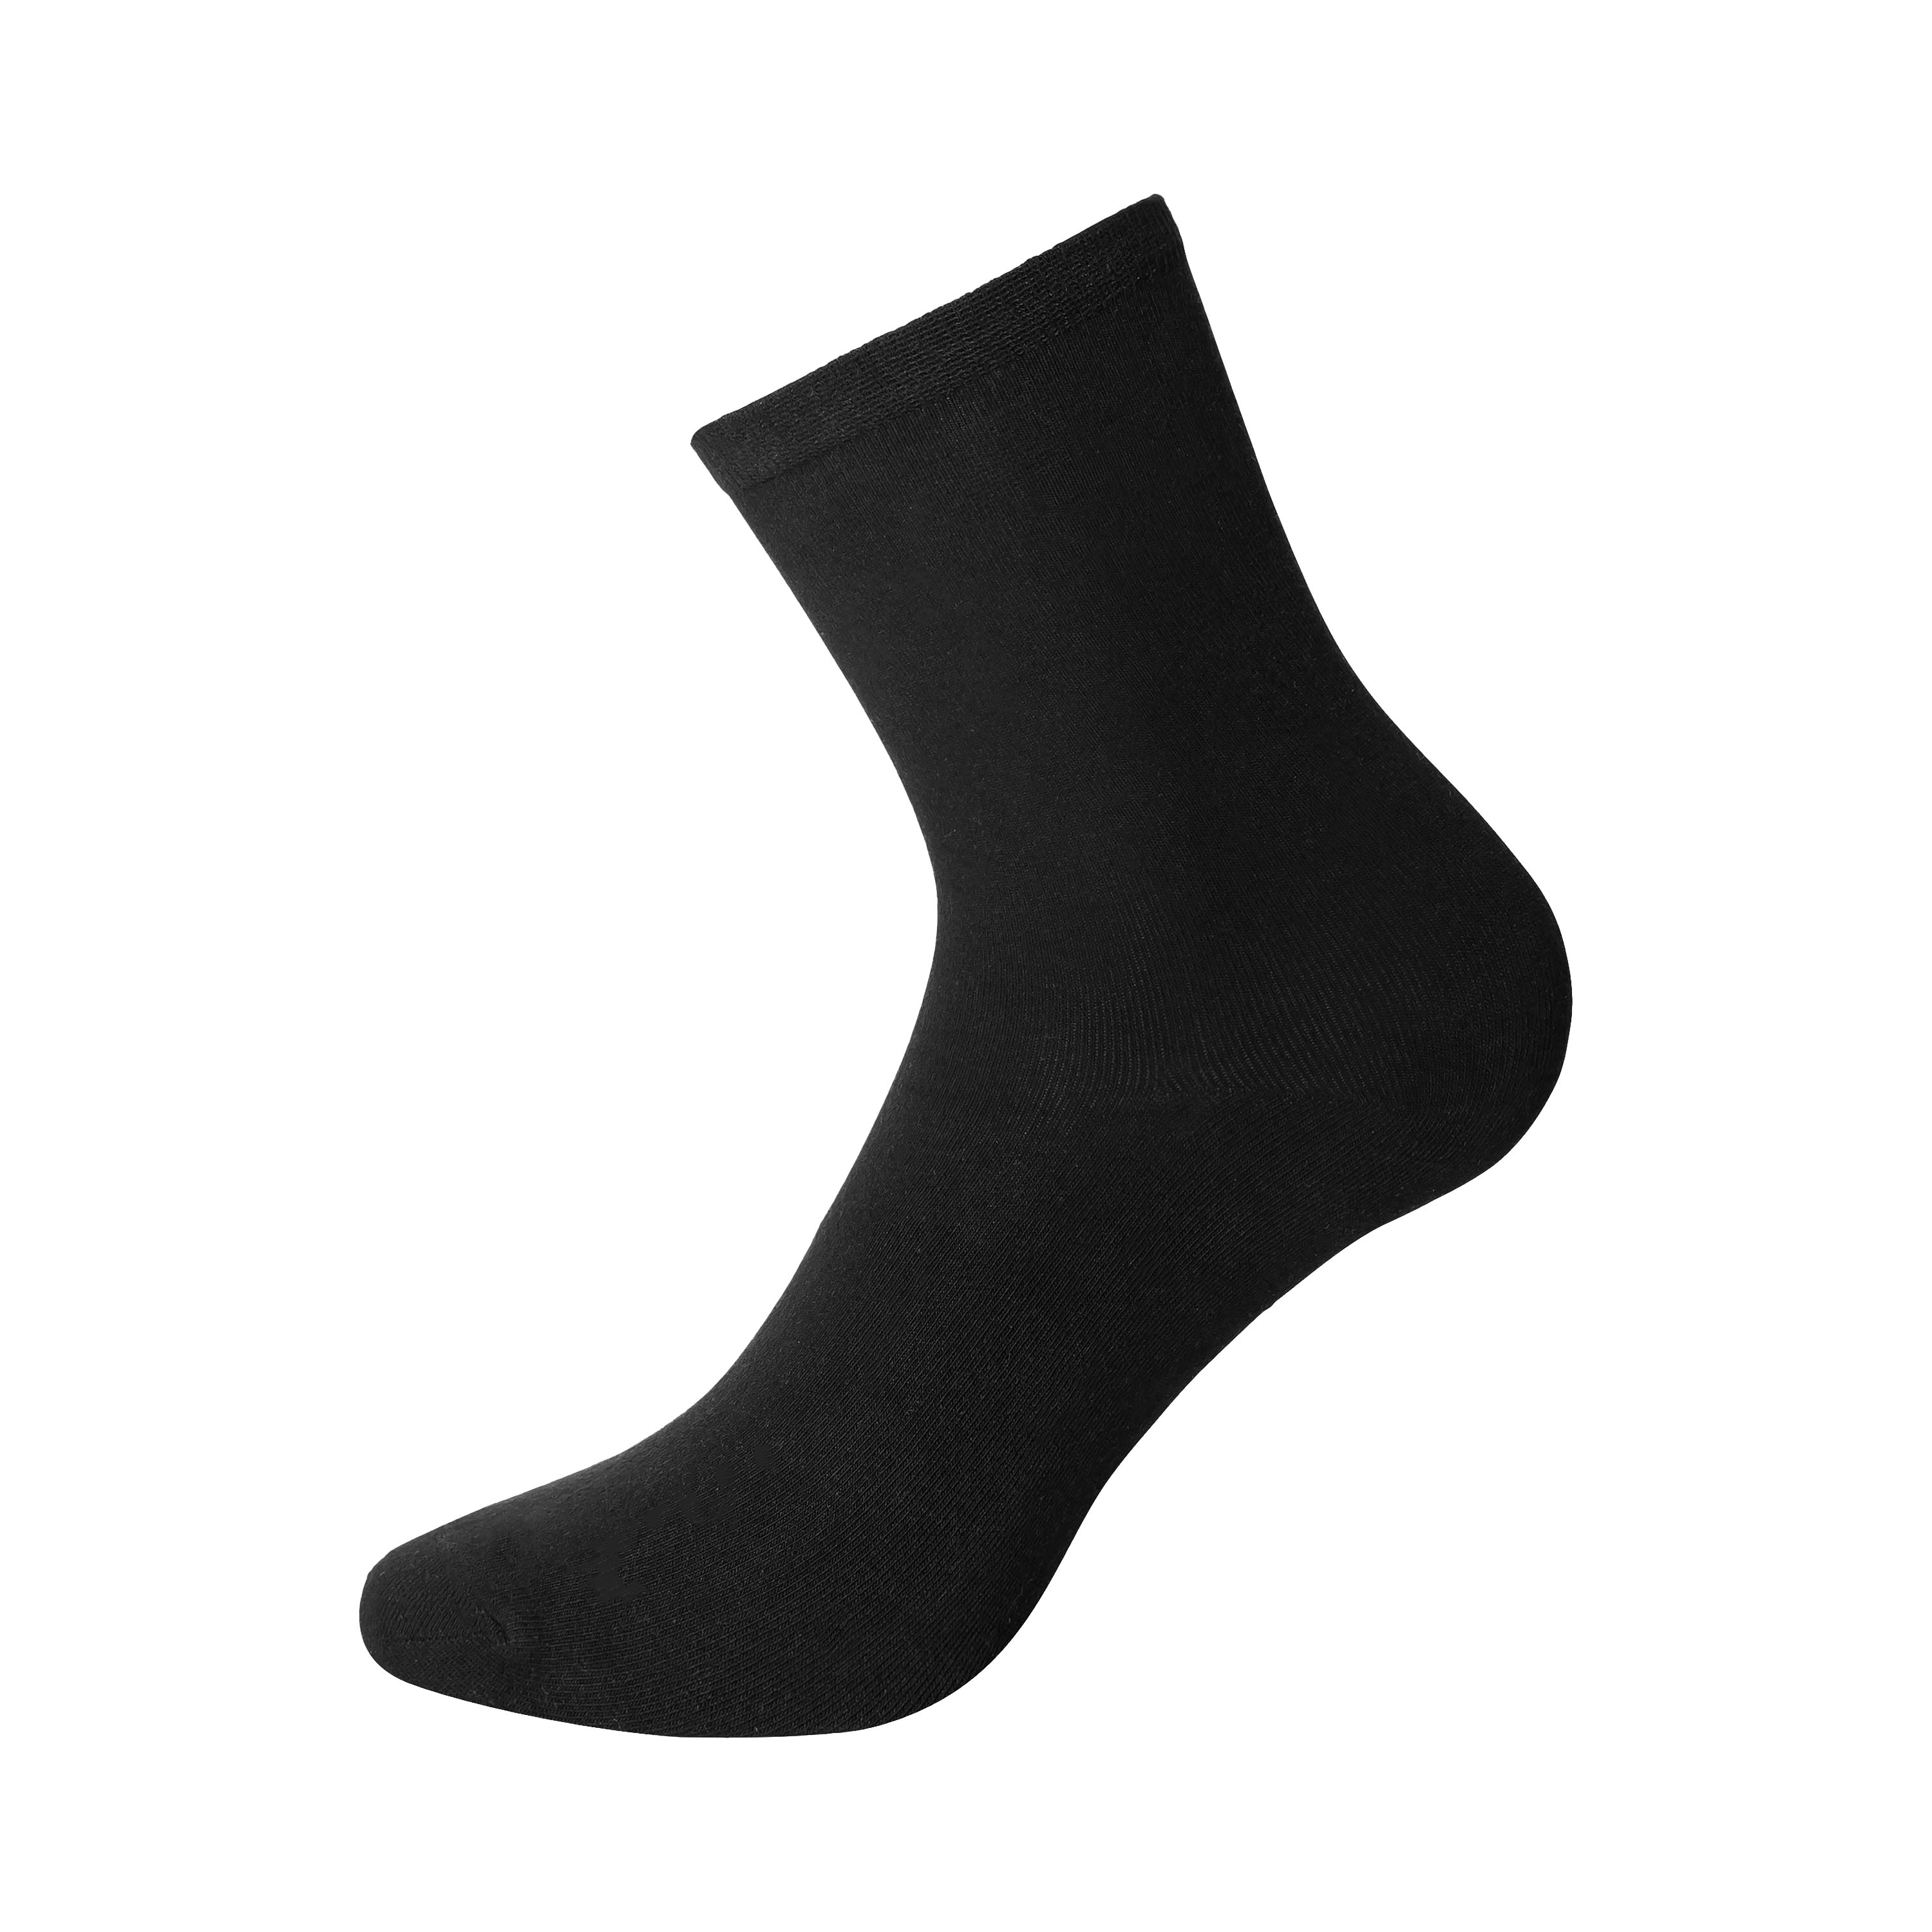 802-02_Socks_black_2